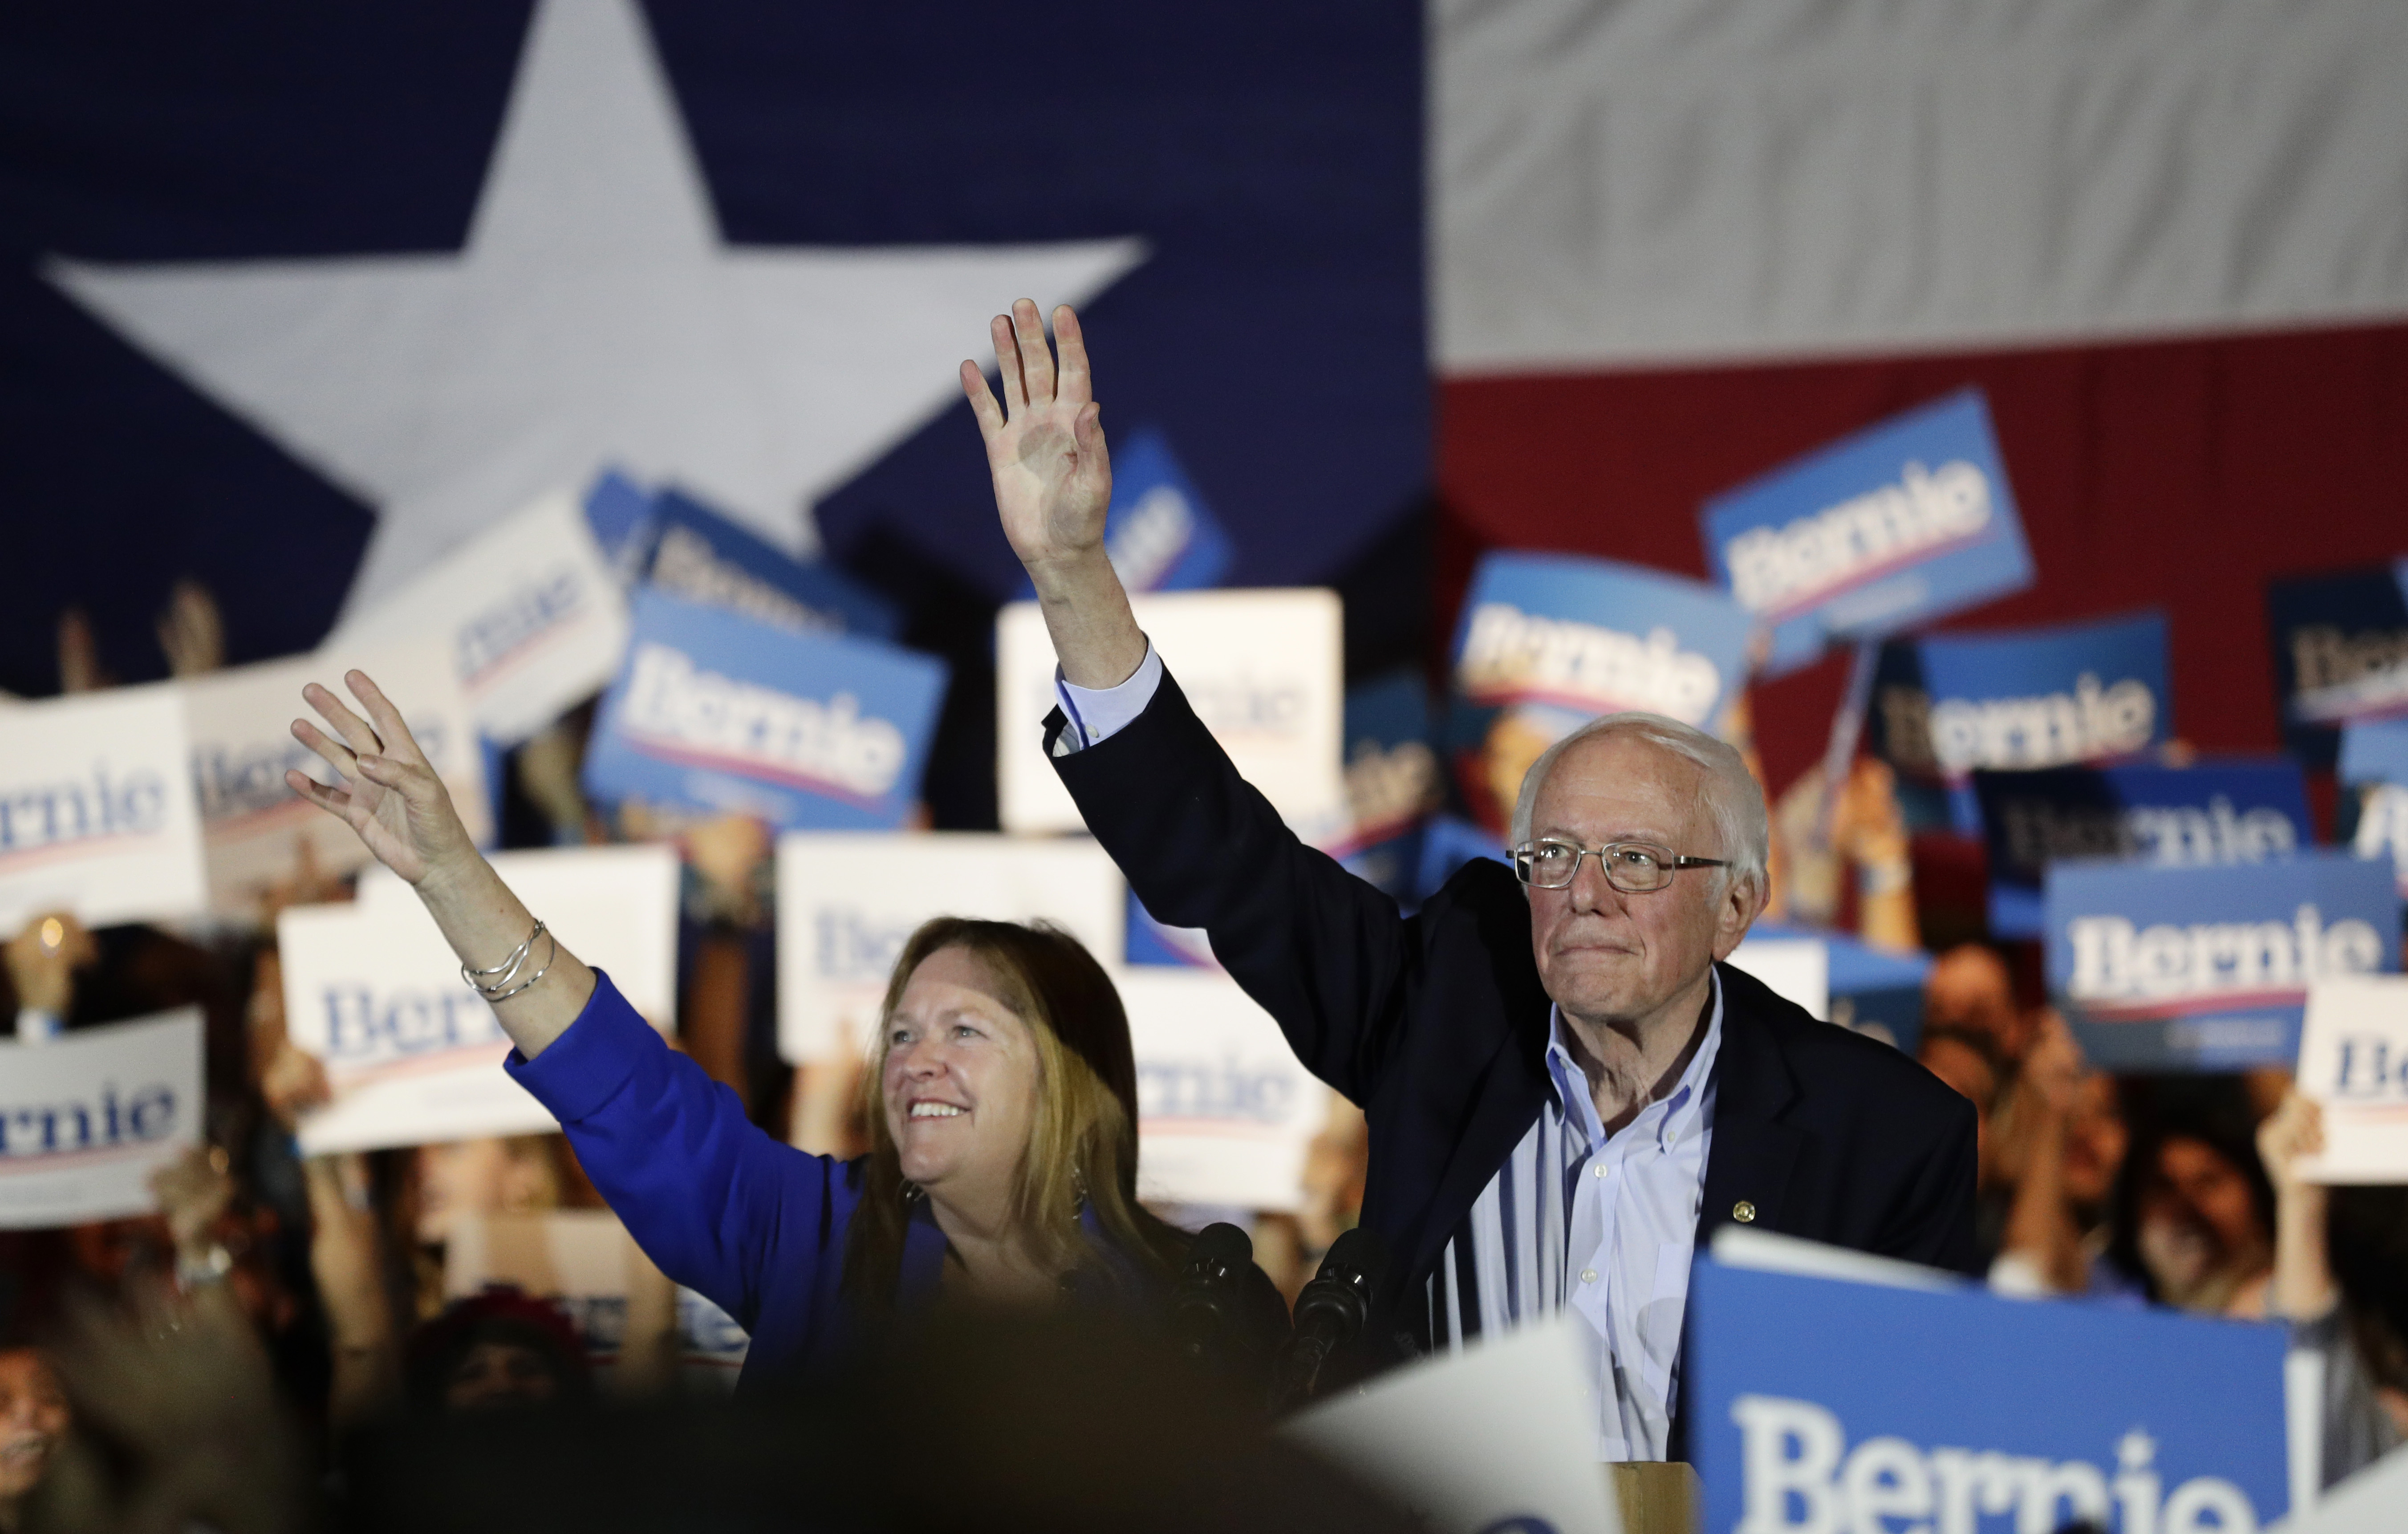 Democratic presidential candidate Sen. Bernie Sanders, I-Vt., right, with his wife Jane, attends a campaign event in San Antonio, Saturday, Feb. 22, 2020. (AP Photo/Eric Gay)